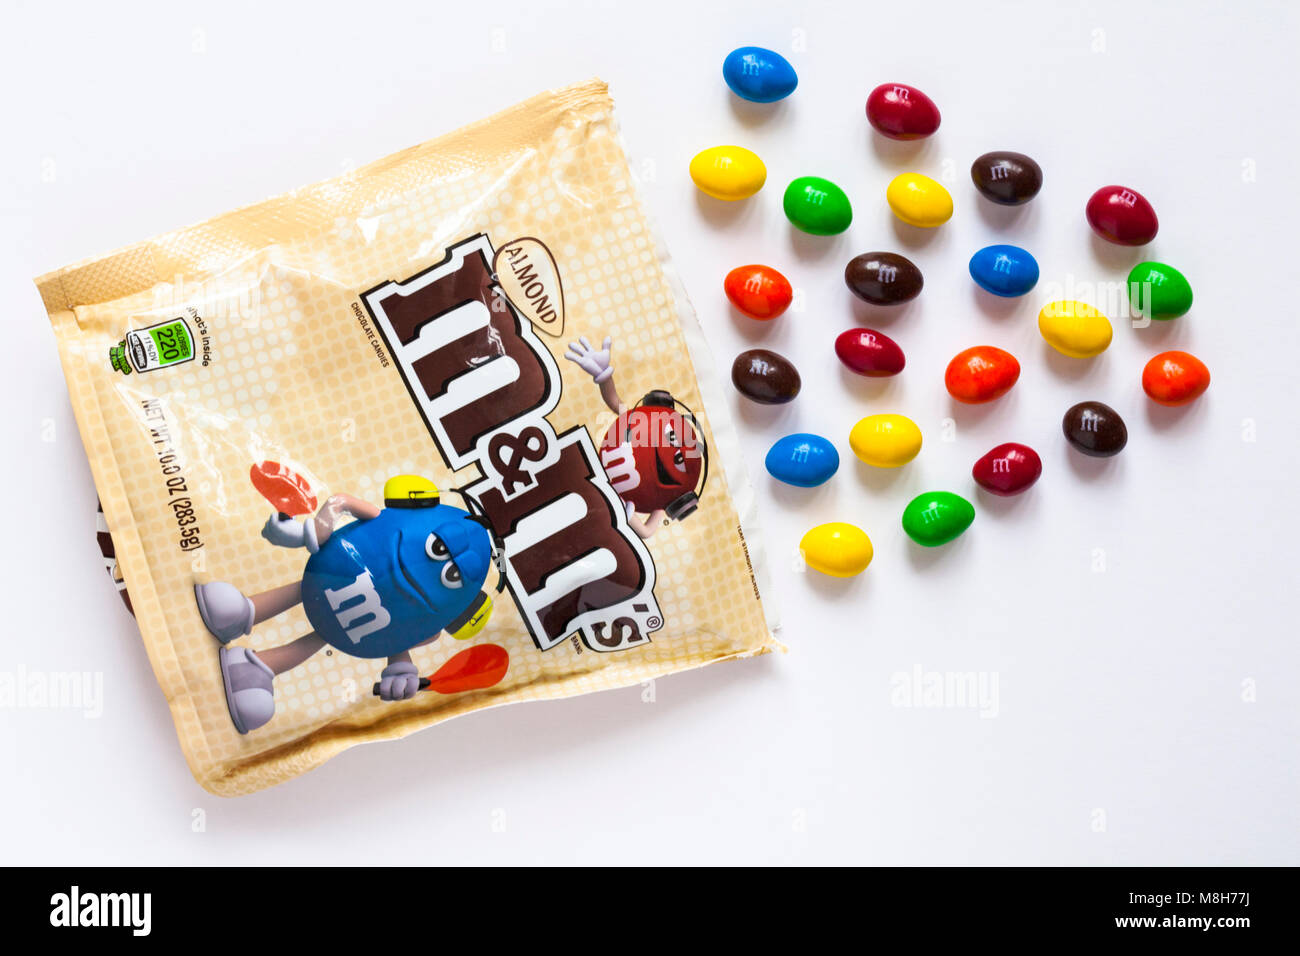 Travel Retail Edition bag of Almond M&Ms with contents spilled on white background - Stock Image